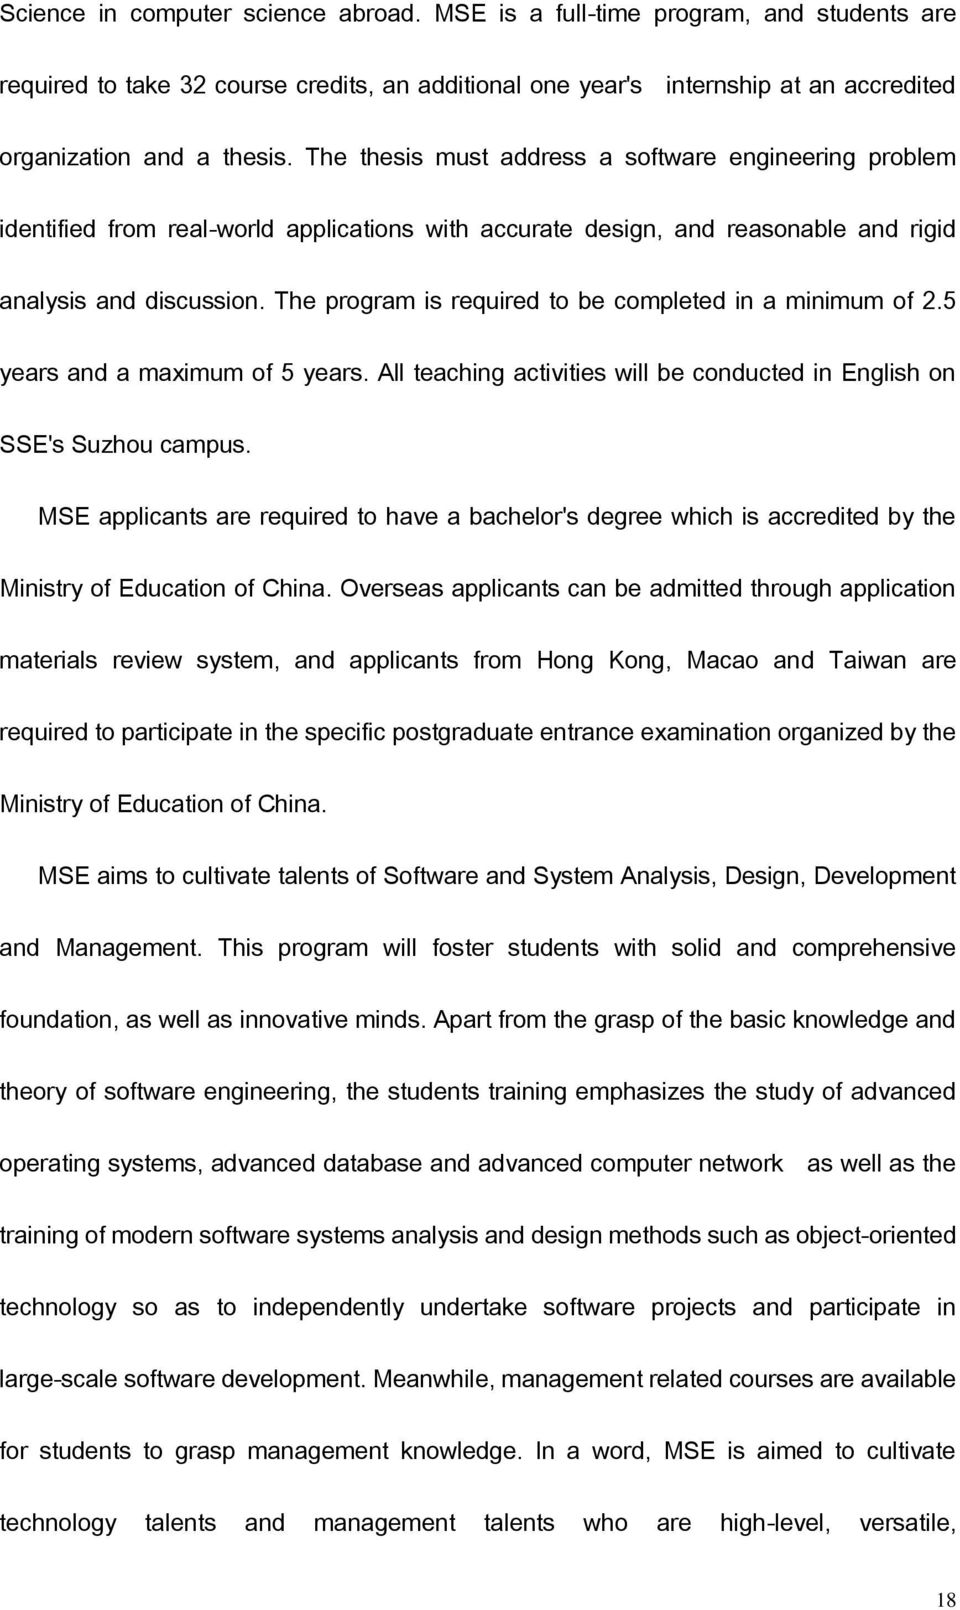 The program is required to be completed in a minimum of 2.5 years and a maximum of 5 years. All teaching activities will be conducted in English on SSE's Suzhou campus.